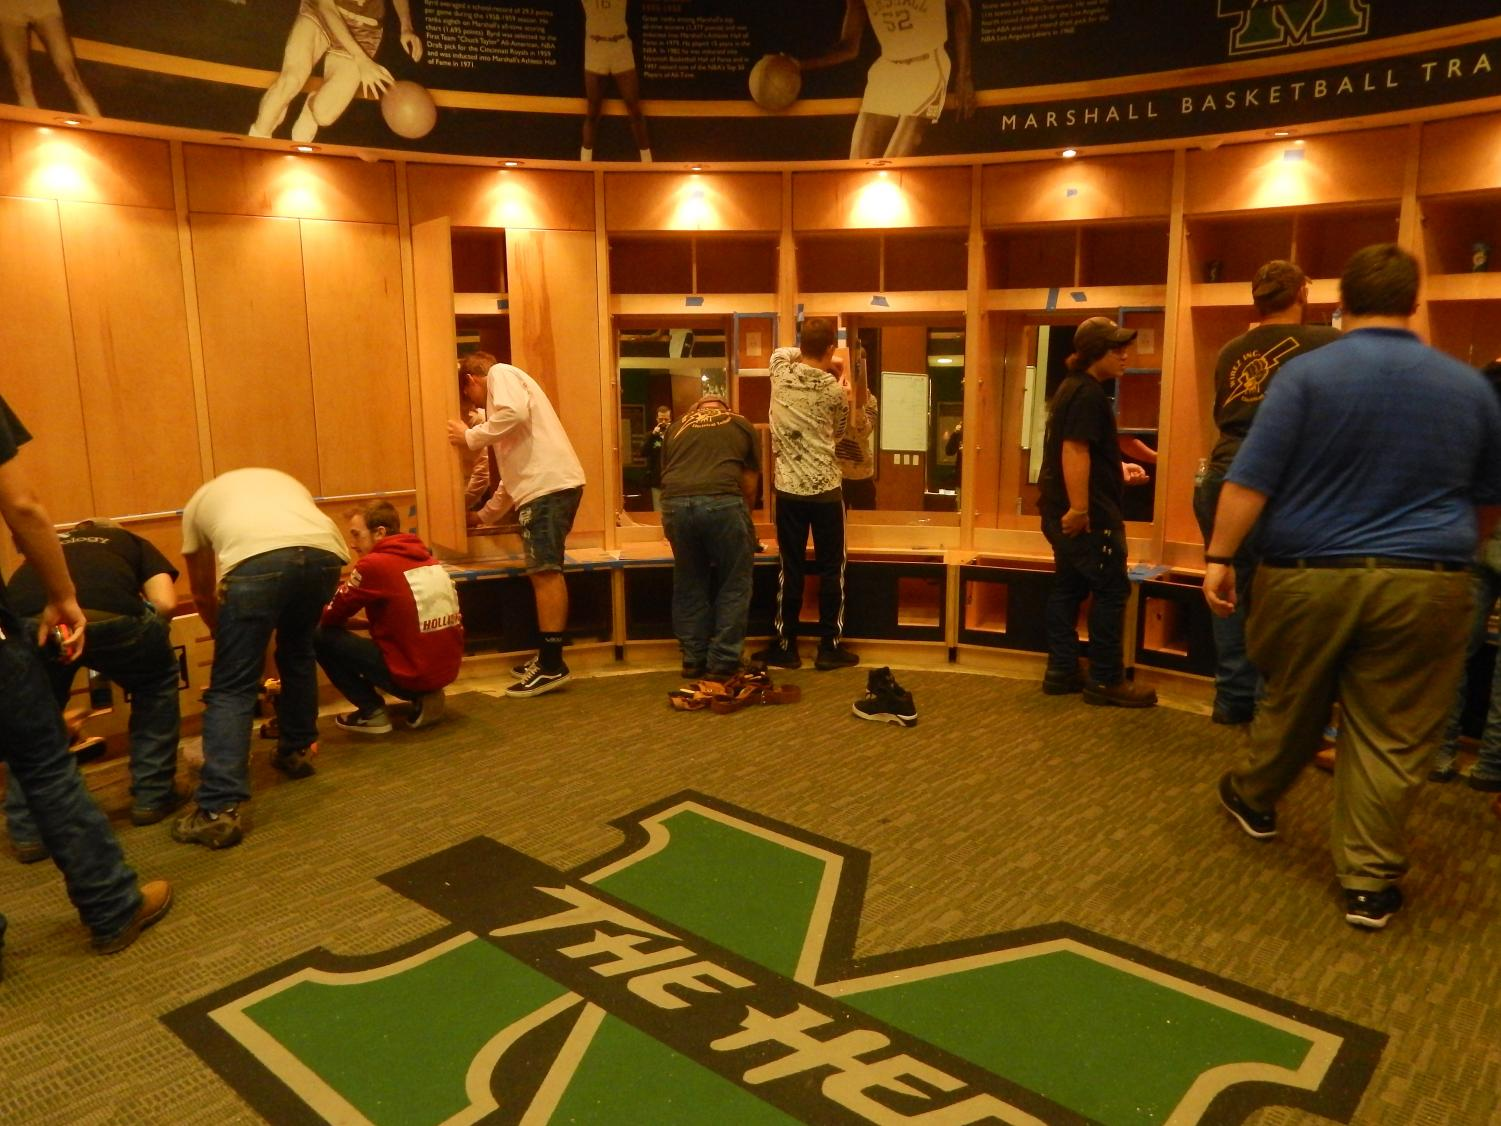 Local high school students work alongside their instructors in the Cam Henderson Center locker room. The instructors guide the students while they work hands-on.